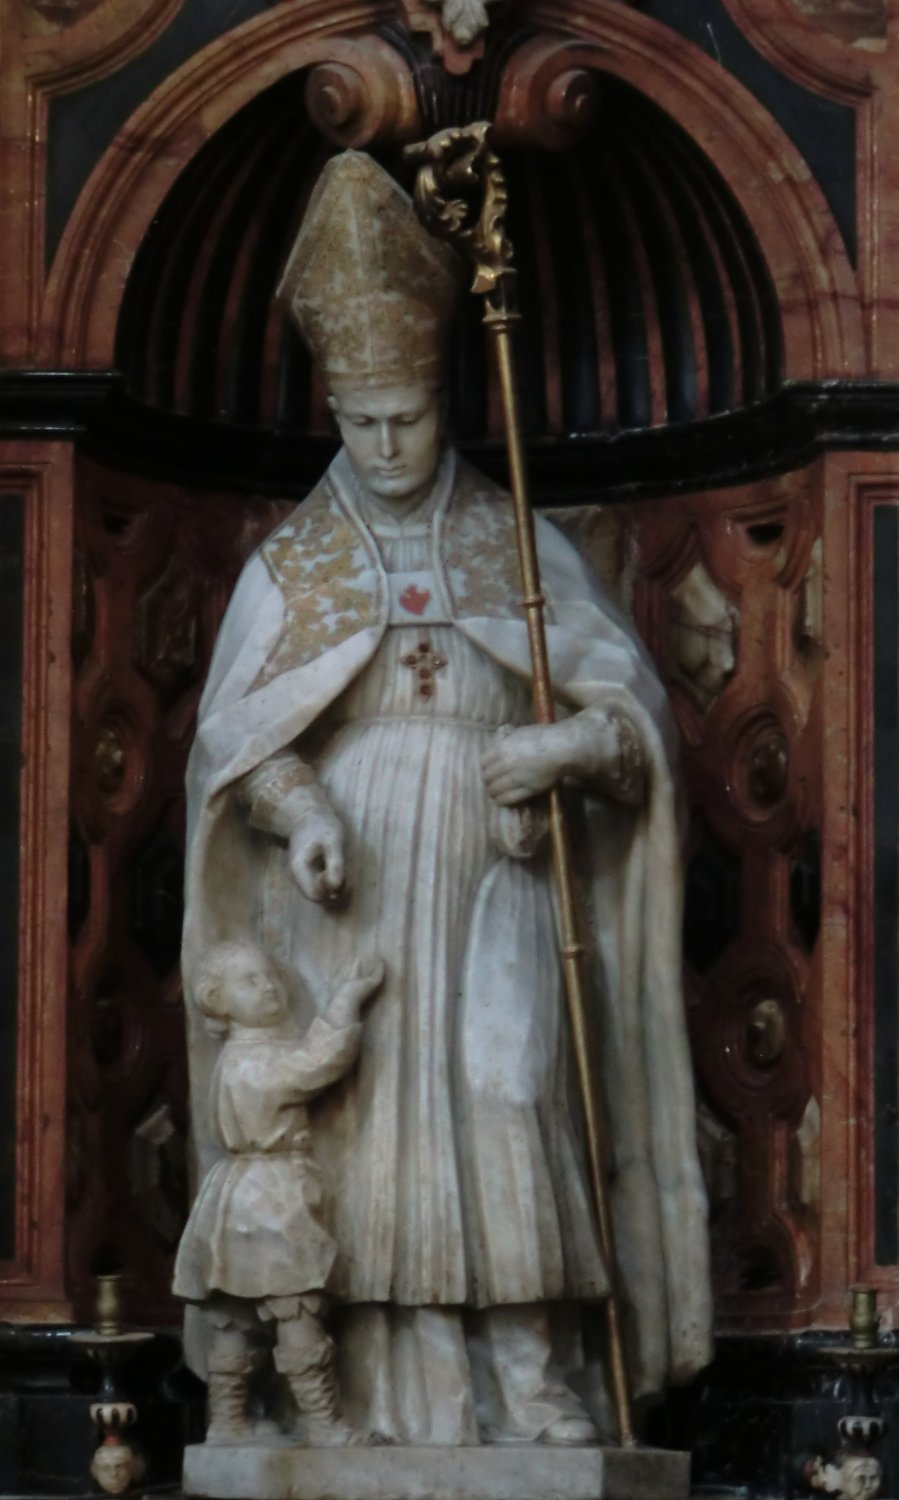 Statue in der Kathedrale in Granada